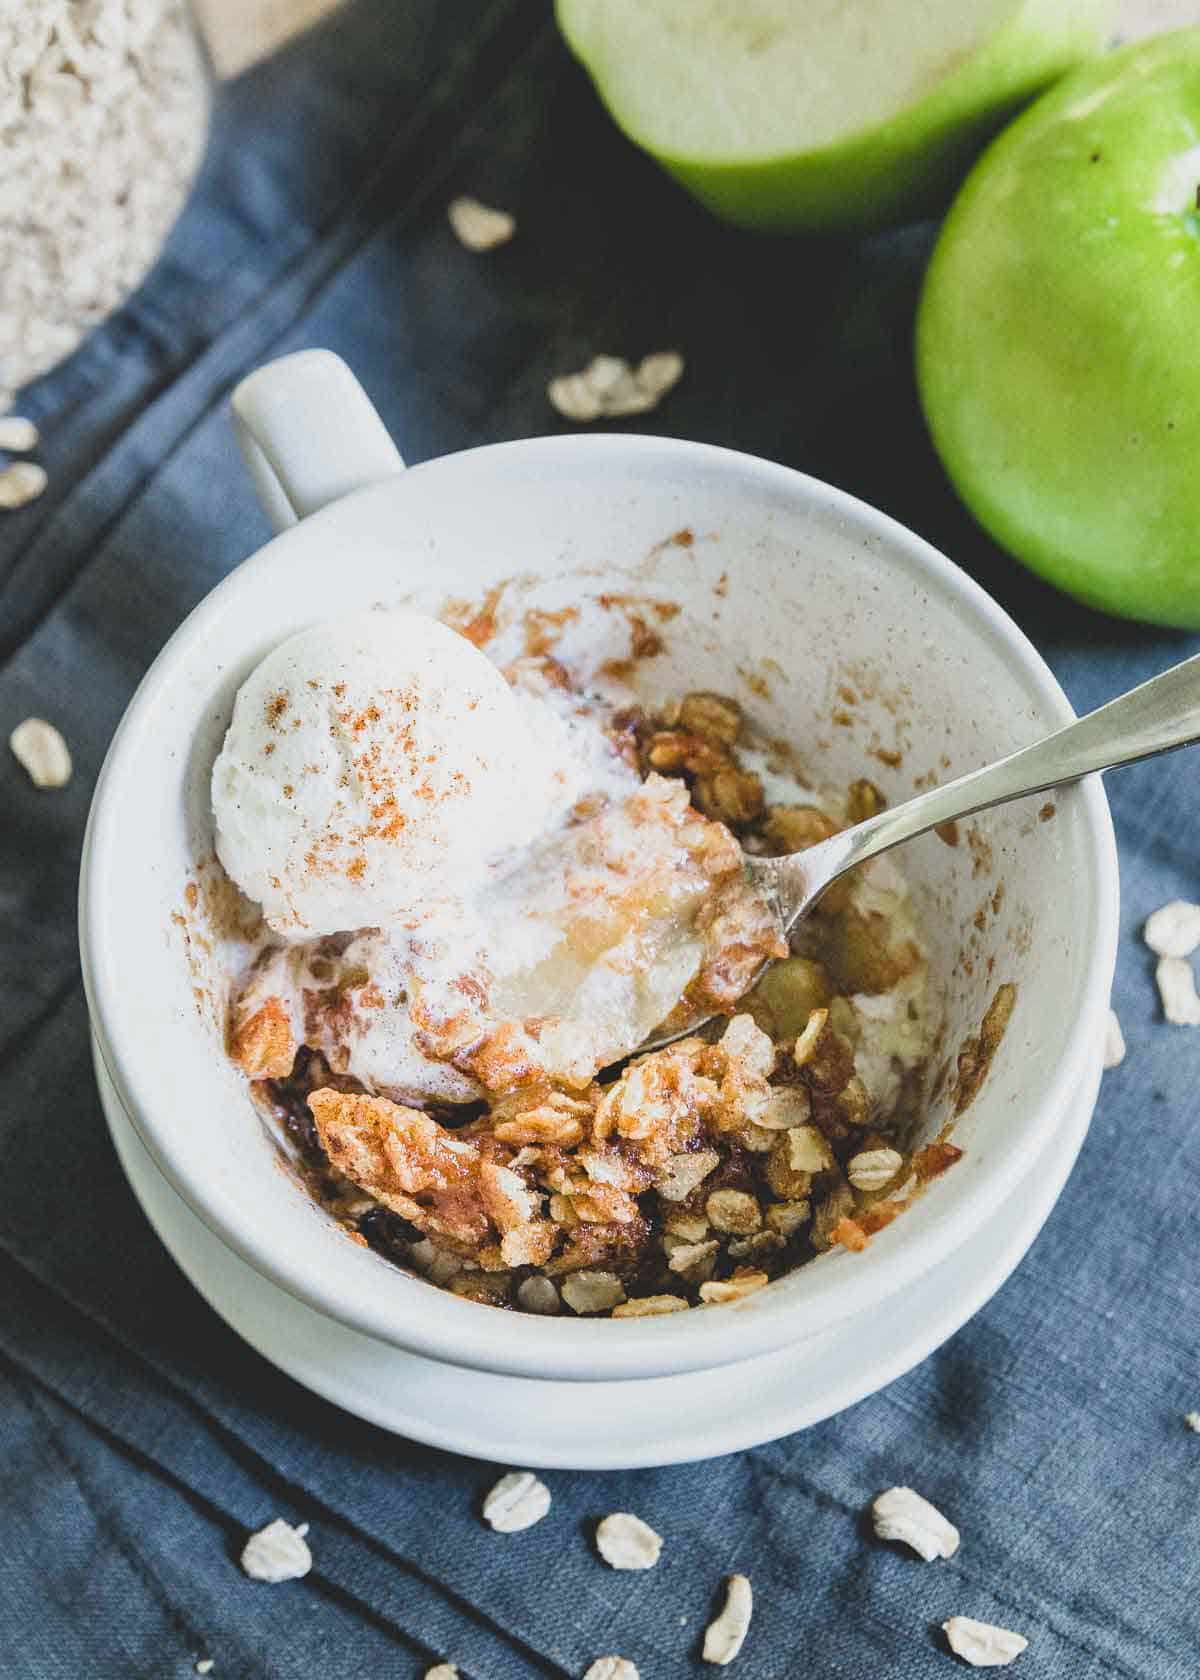 Quick and easy microwave apple crisp recipe that can be made in a mug or small ramekin to serve 1.